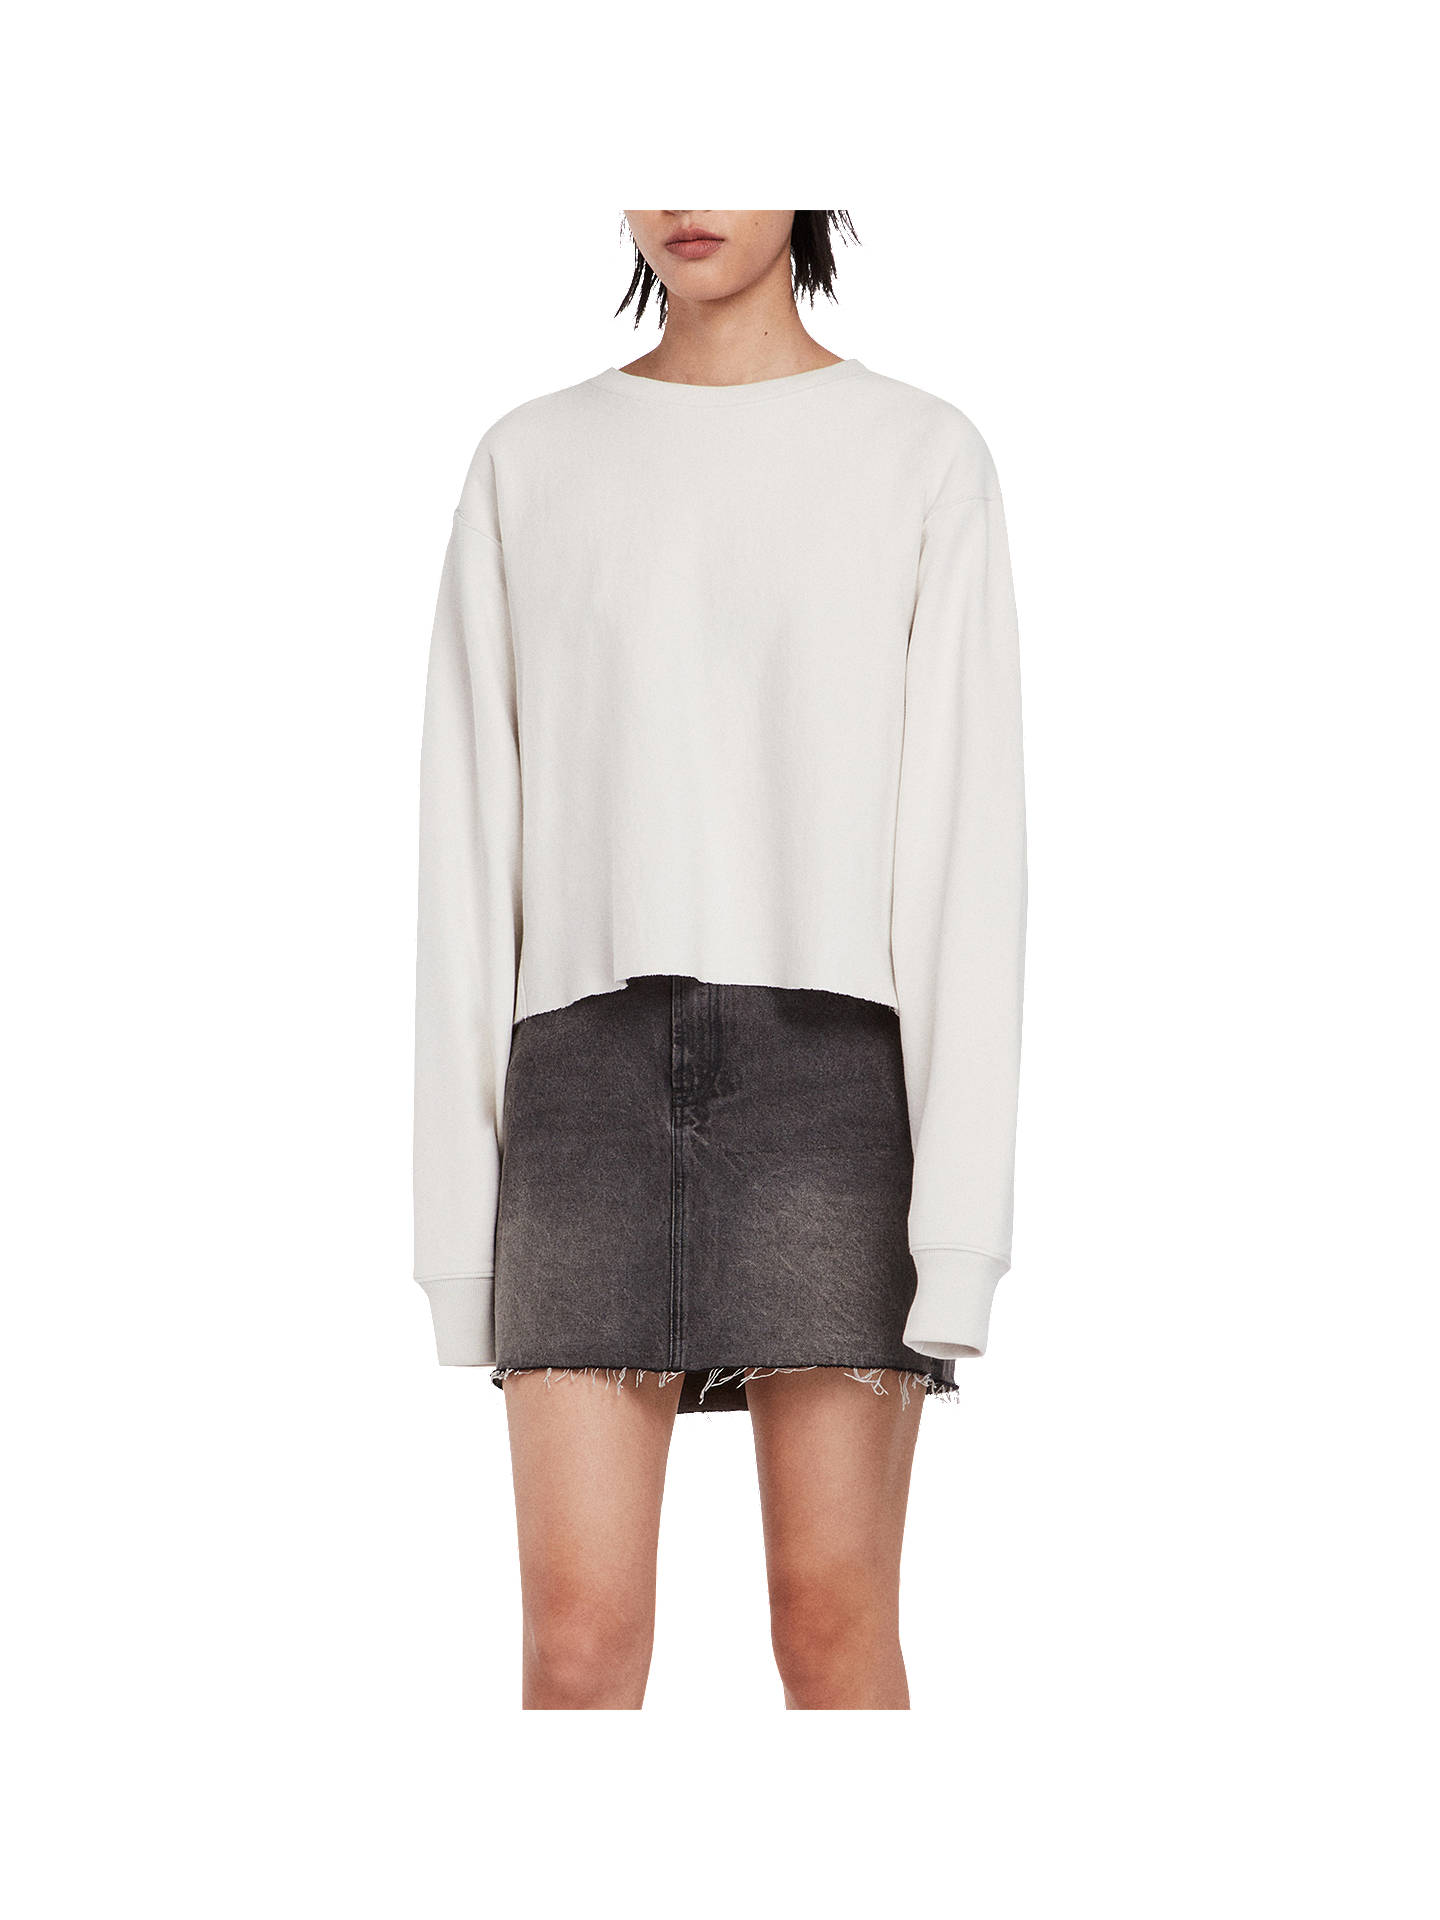 BuyAllSaints Navarre Sweatshirt, White Ivory, XS Online at johnlewis.com